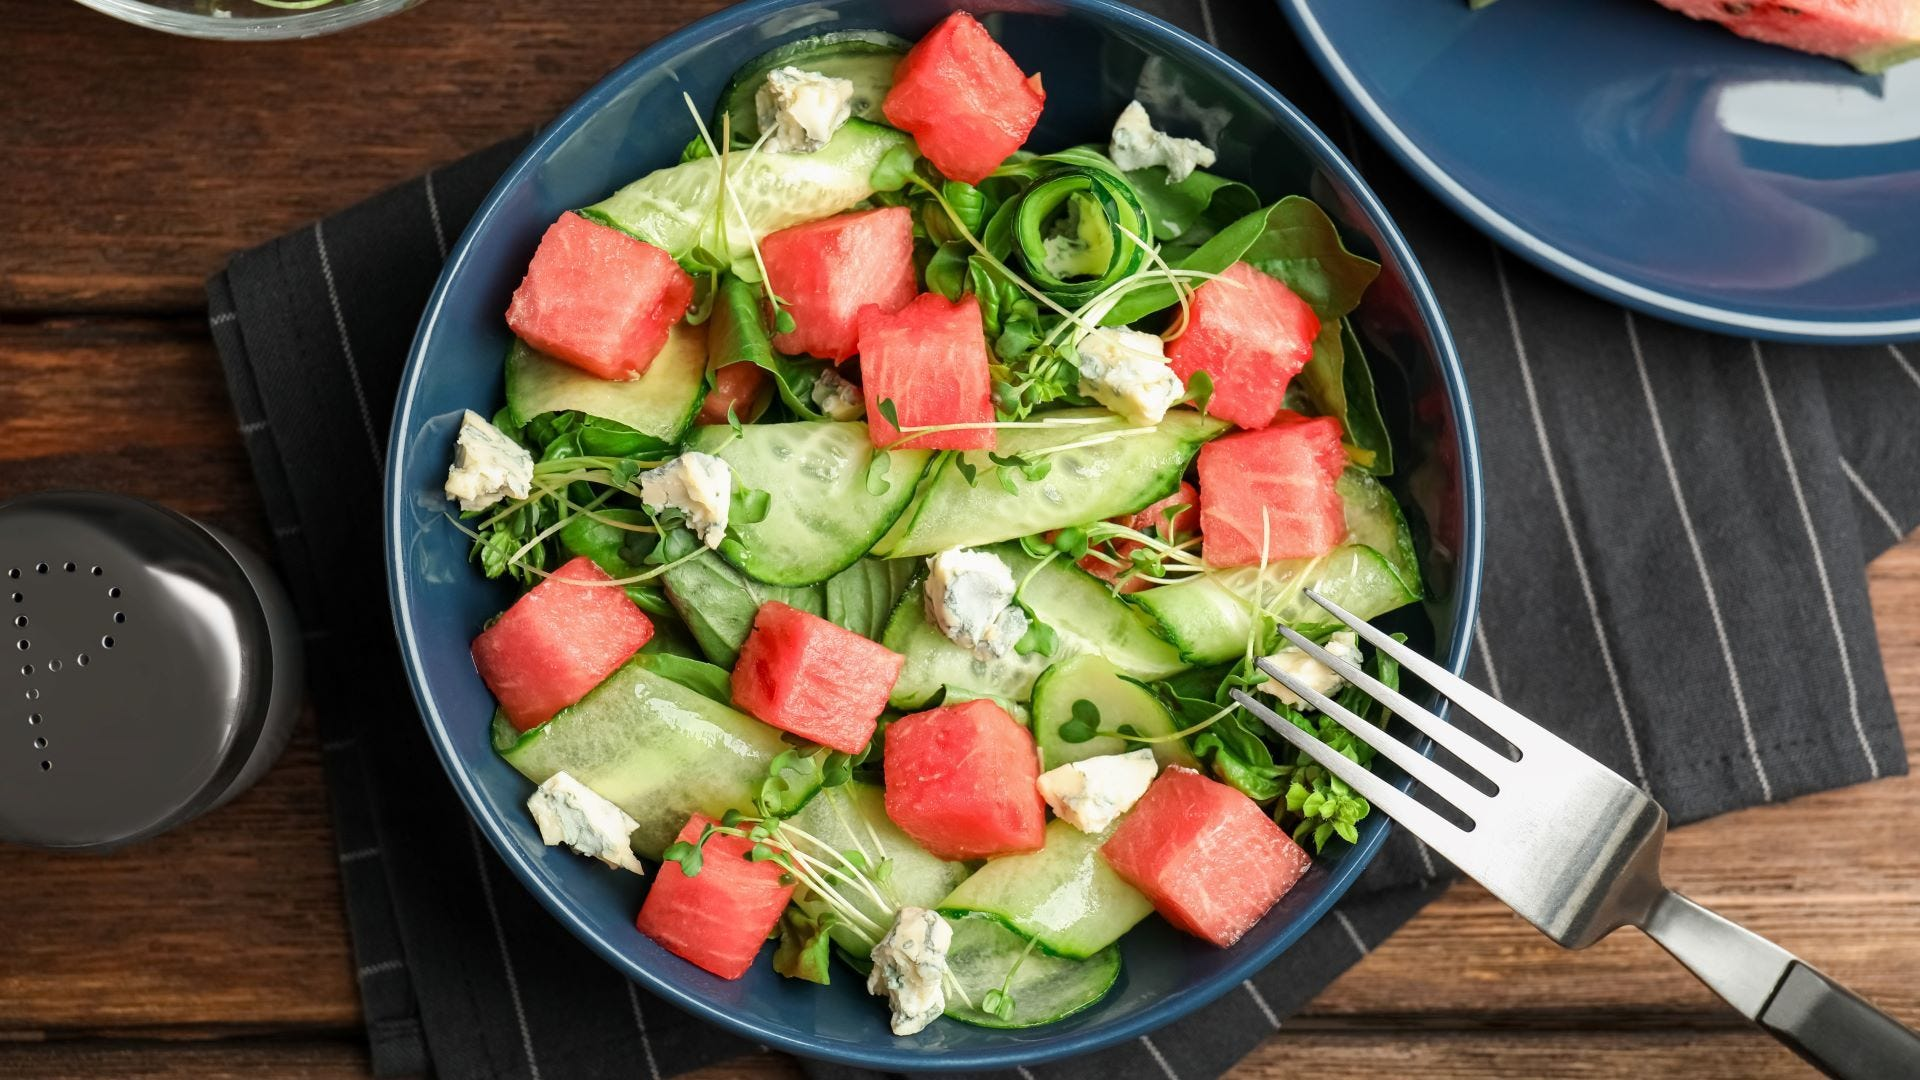 A cucumber and watermelon salad.